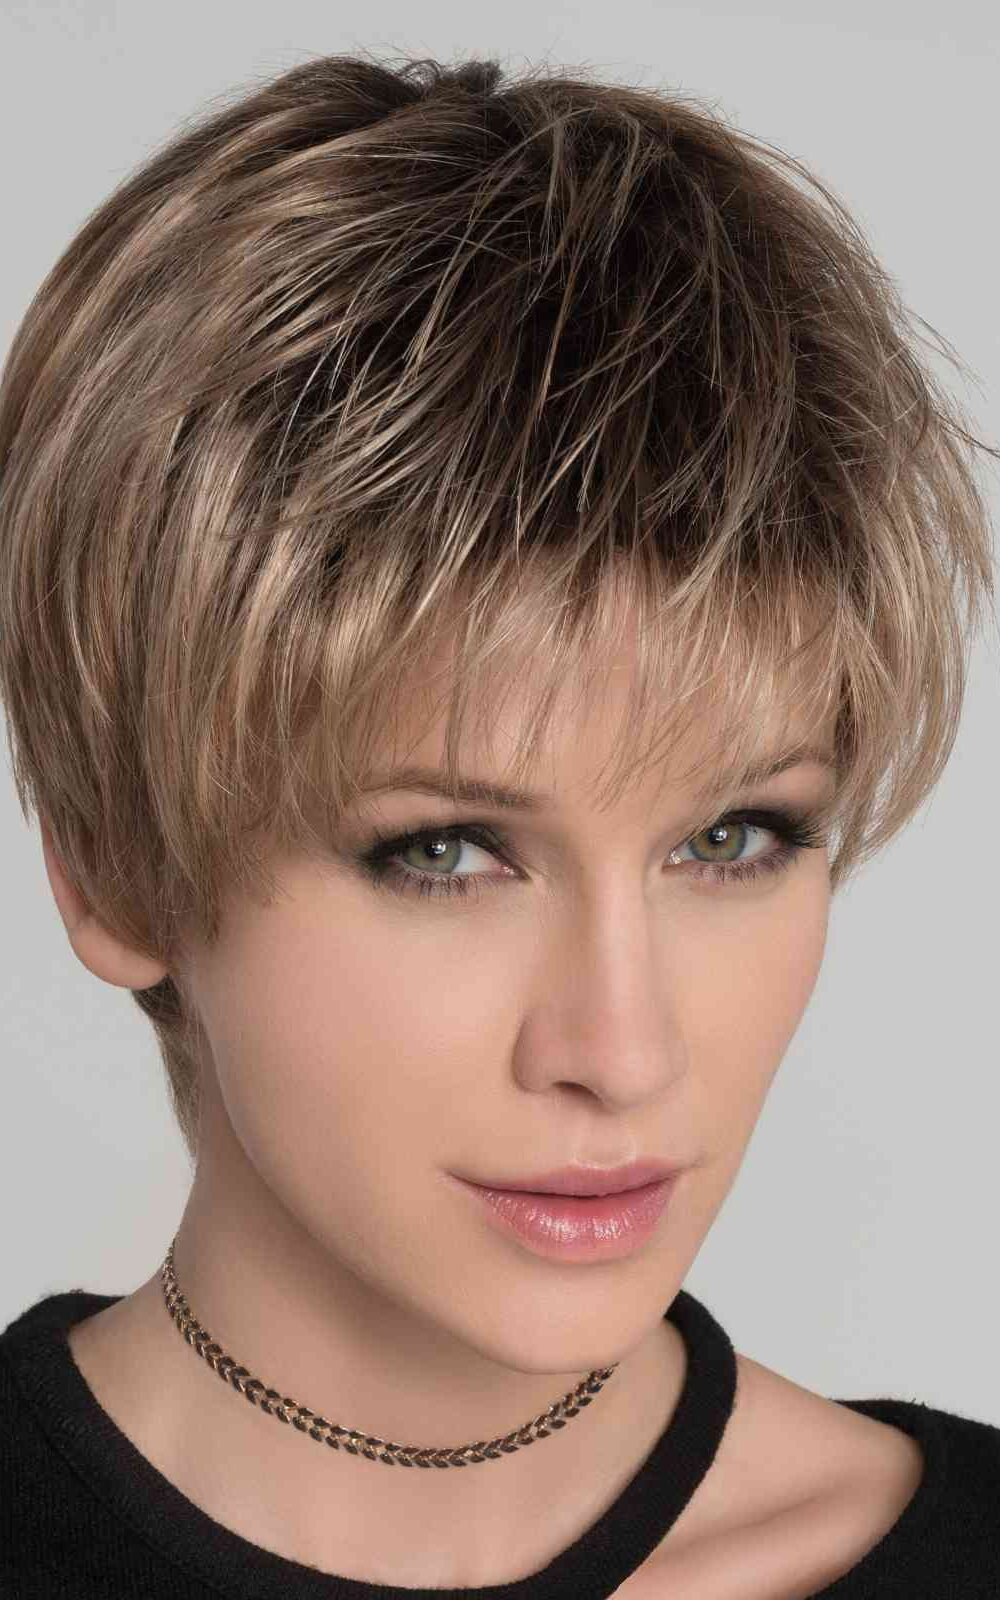 STOP HI TECH by Ellen Wille   Dark Sand Rooted  Weighing less than two ounces, Stop Hi Tec by Ellen Wille Wigs is a light, carefree style boasting ultimate comfort and versatility.